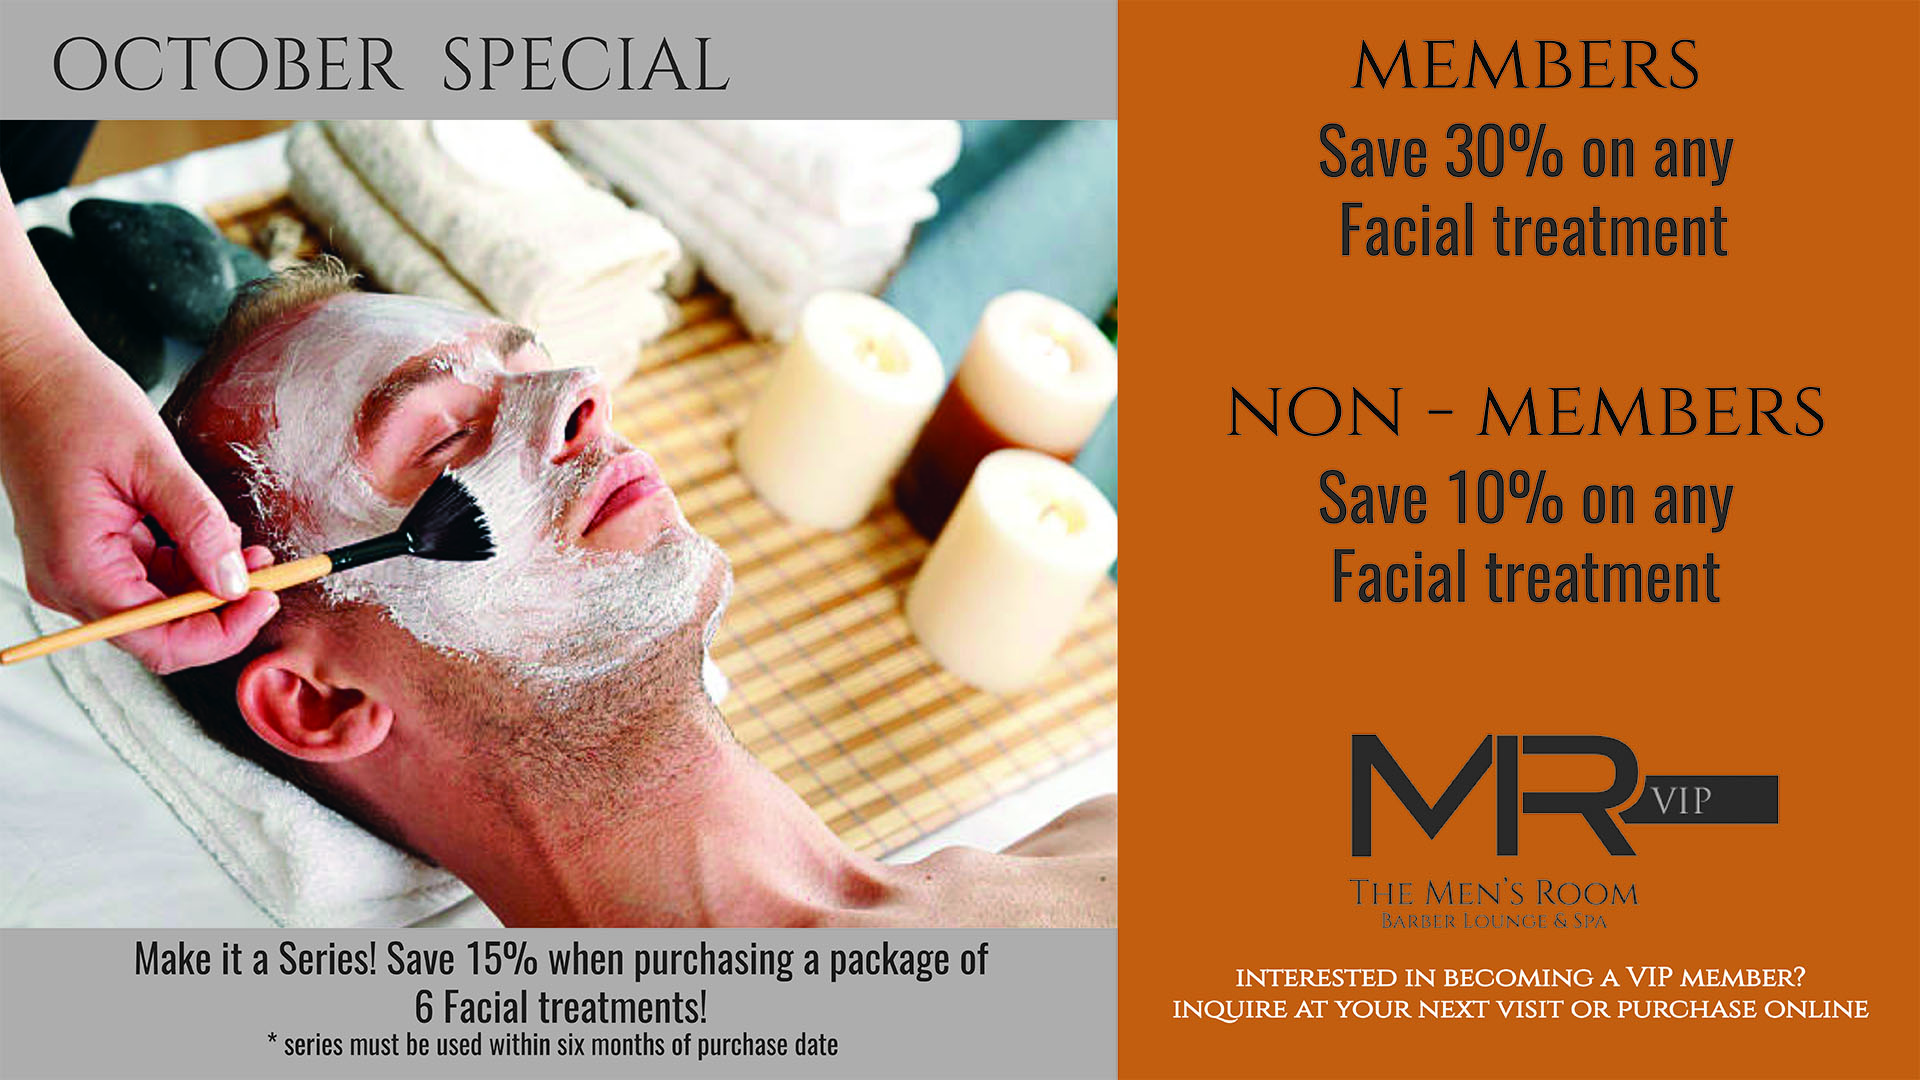 The Men's Room Barber, Lounge, & Spa October Special